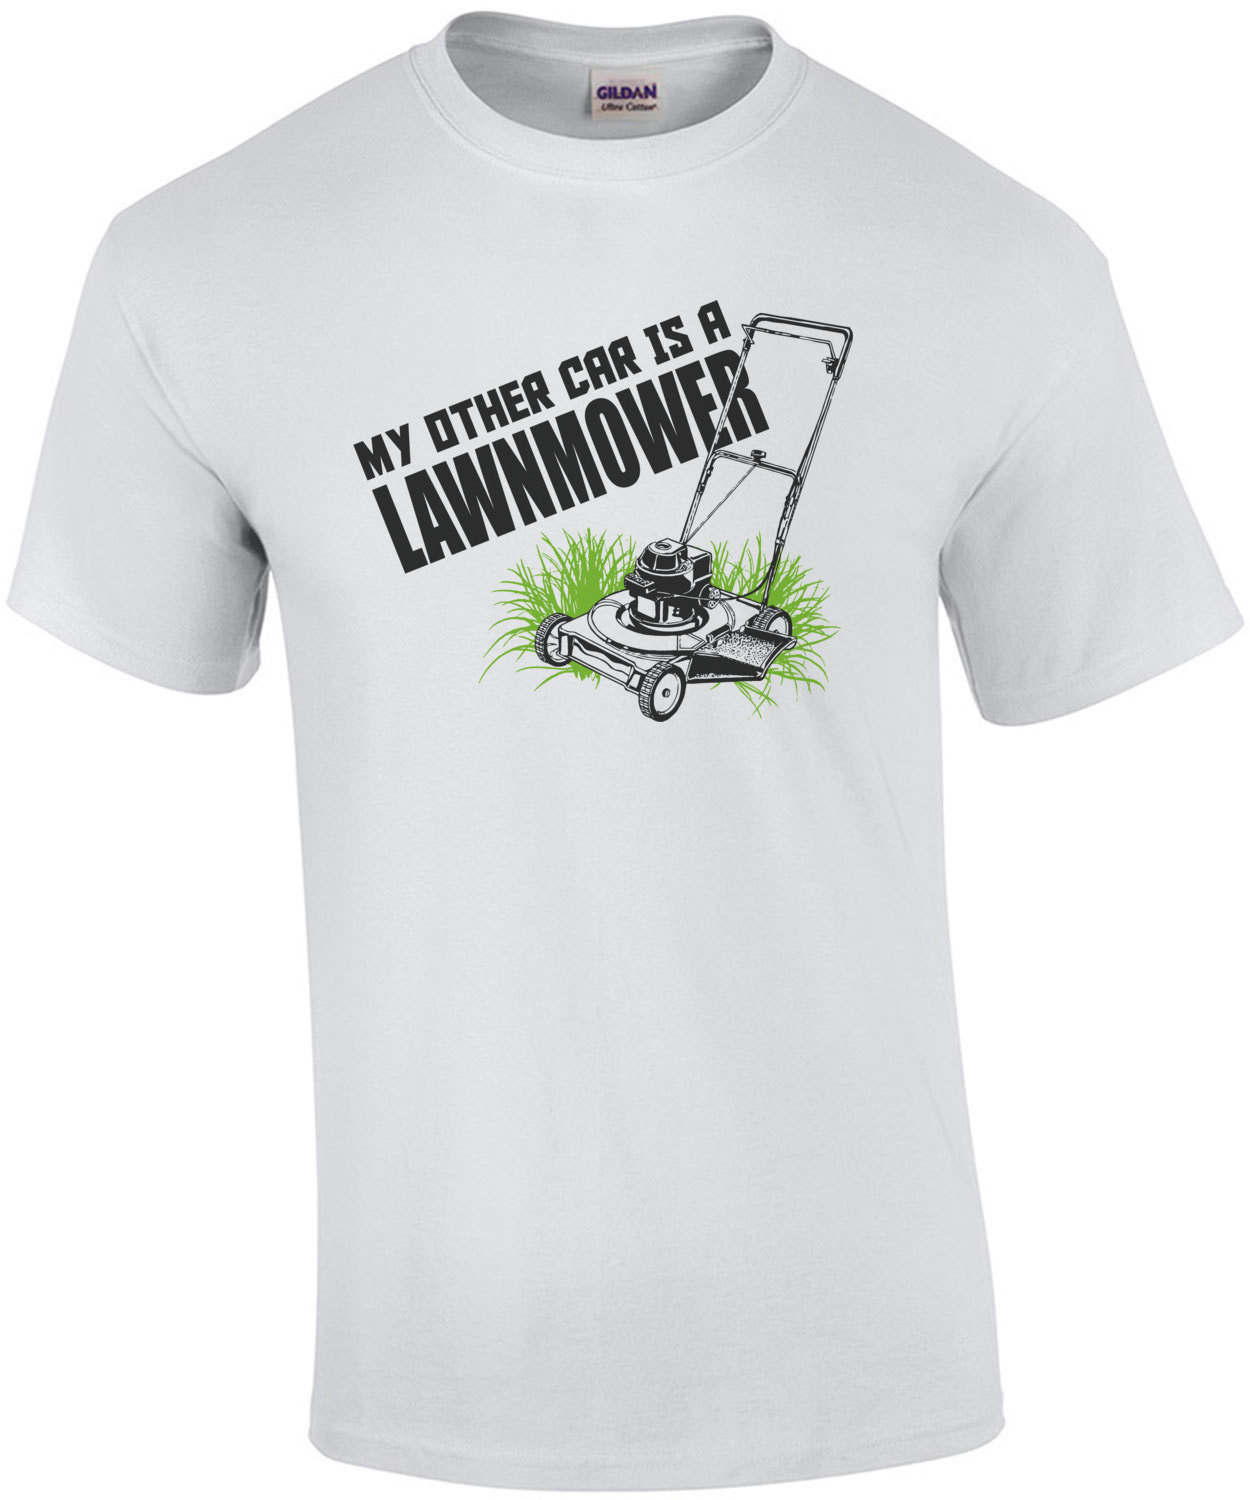 My Other Car Is A Lawnmower T-Shirt